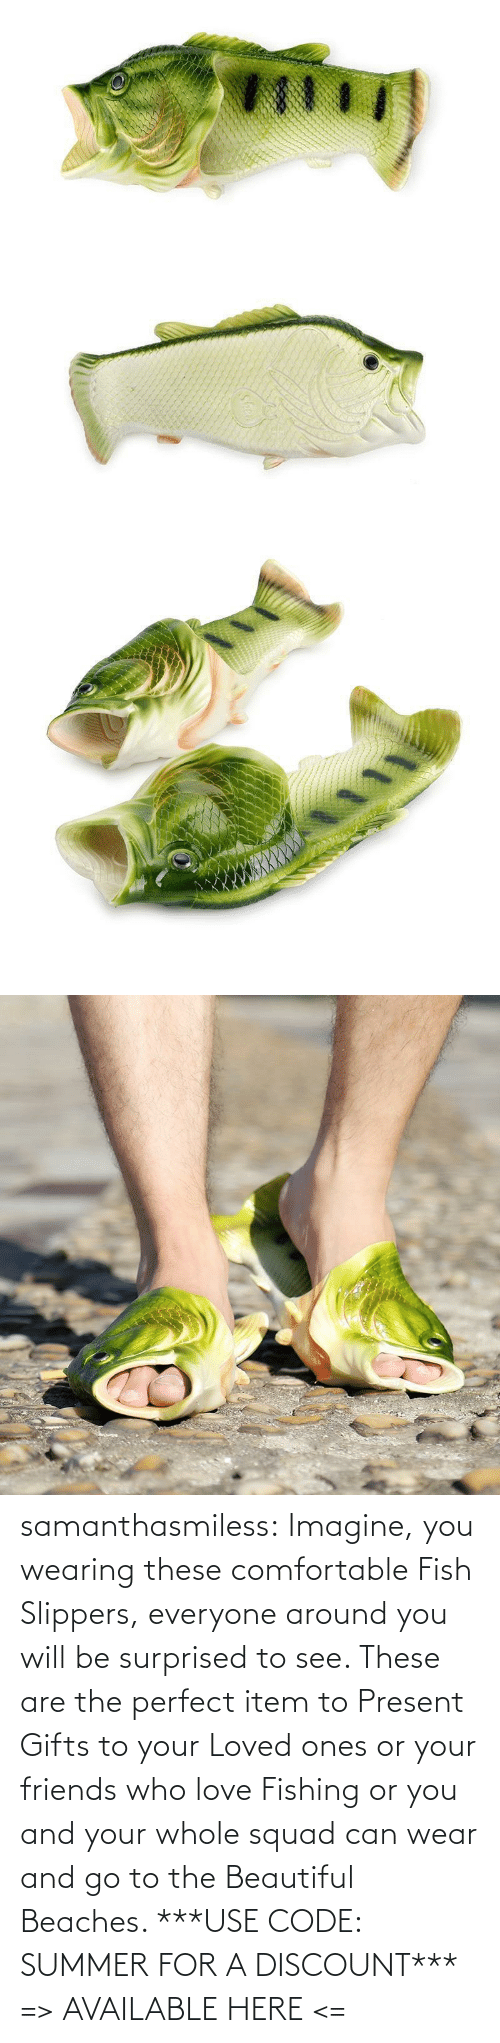 M: samanthasmiless: Imagine, you wearing these comfortable Fish Slippers, everyone around you will be surprised to see. These are the perfect item to Present Gifts to your Loved ones or your friends who love Fishing or you and your whole squad can wear and go to the Beautiful Beaches.  ***USE CODE: SUMMER FOR A DISCOUNT*** => AVAILABLE HERE <=